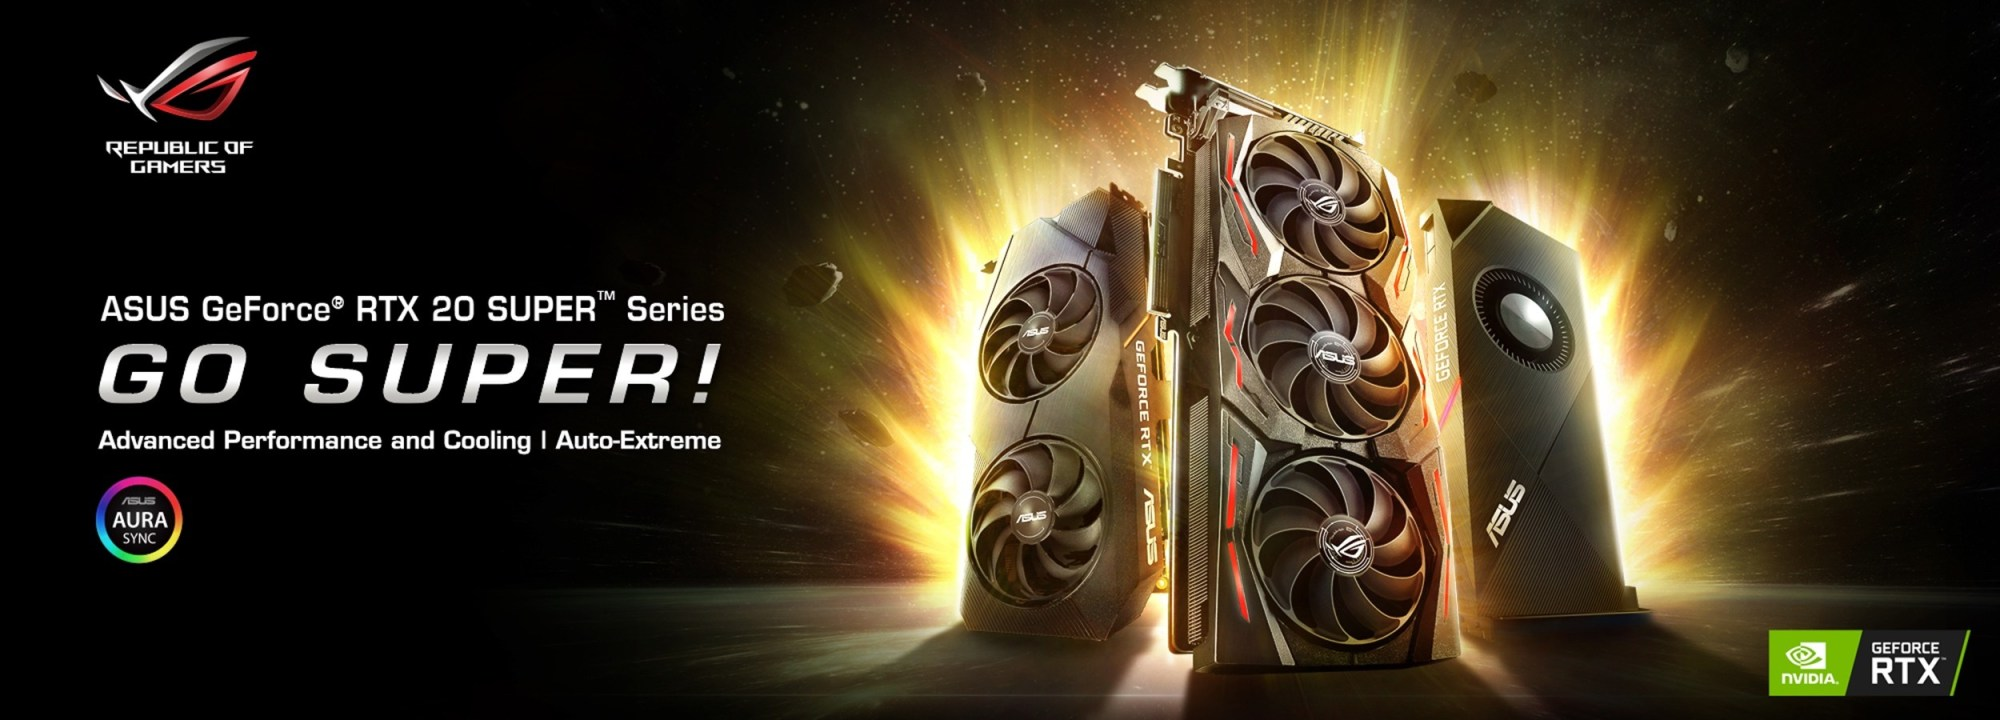 ROG Strix、ASUS Dual及Turbo GeForce RTX 2080/2070/2060 SUPER系列電競顯示卡,即日起在台陸續上市!.jpg